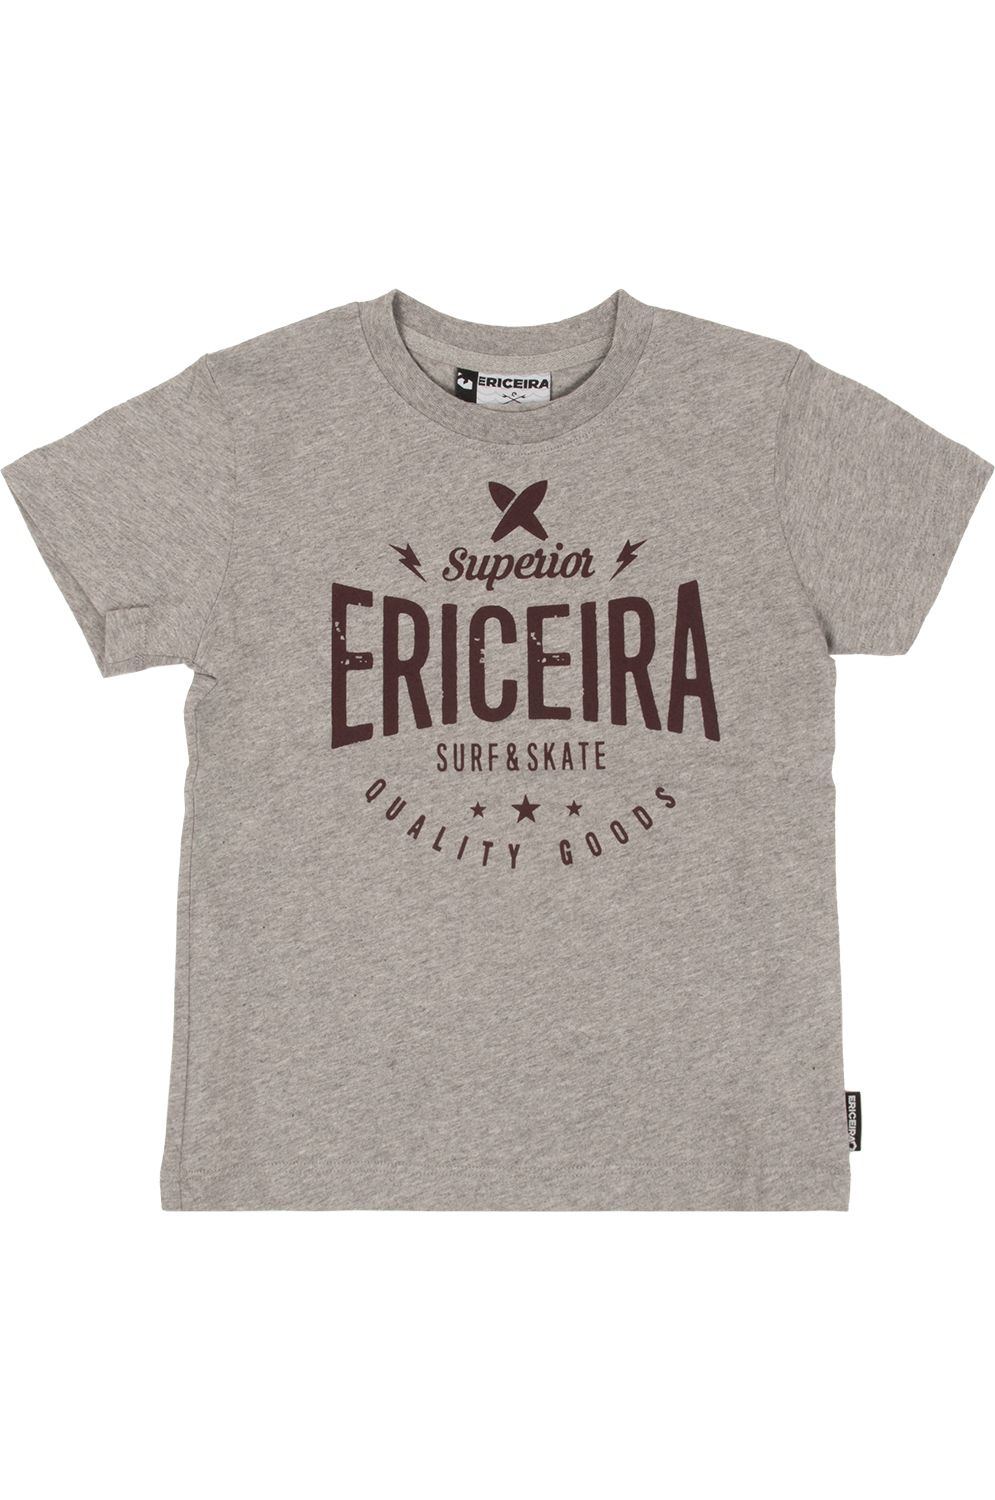 Ericeira Surf Skate T-Shirt SHIFT Grey Heather